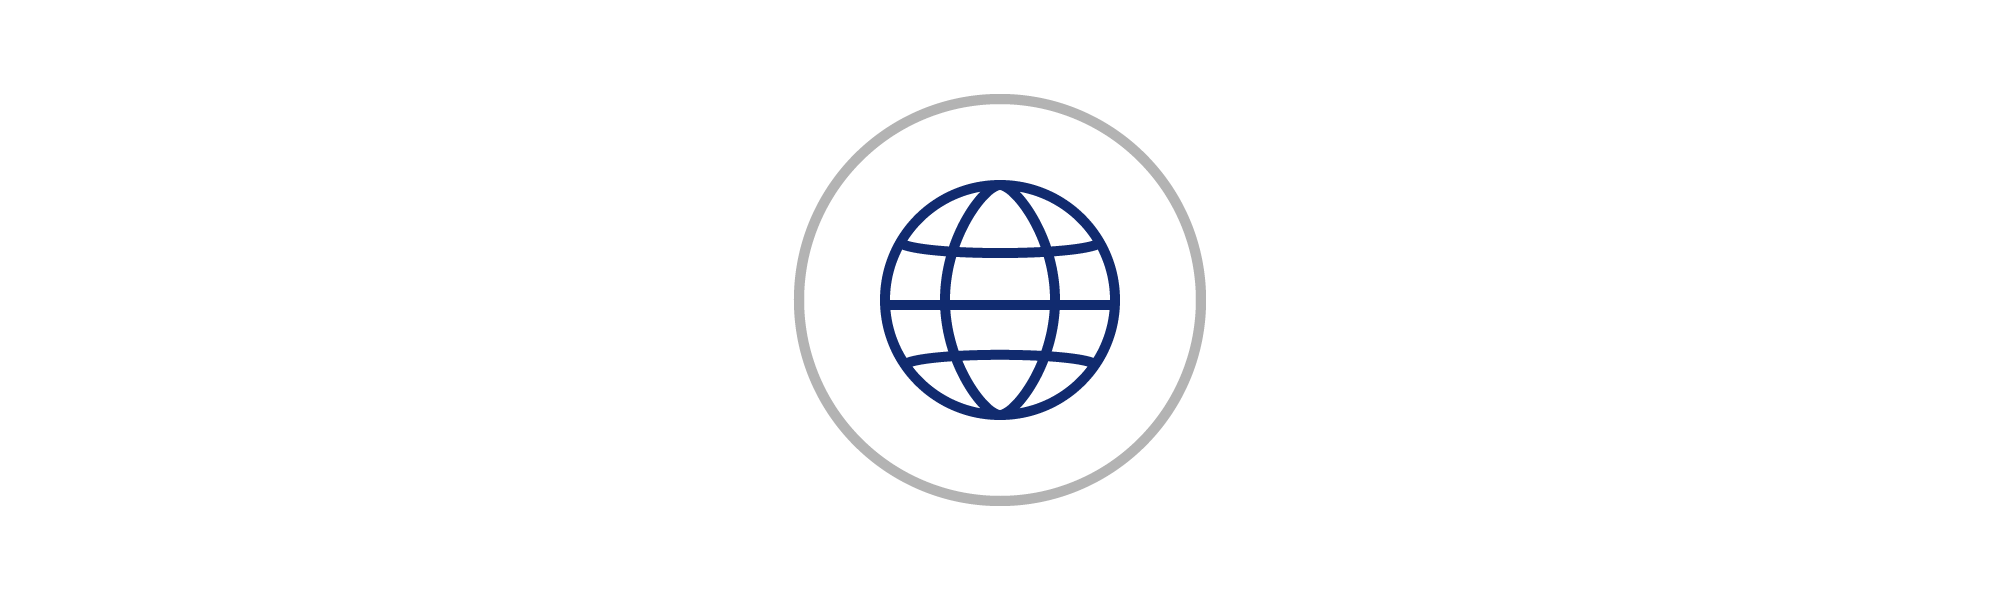 Icon_Globe.png